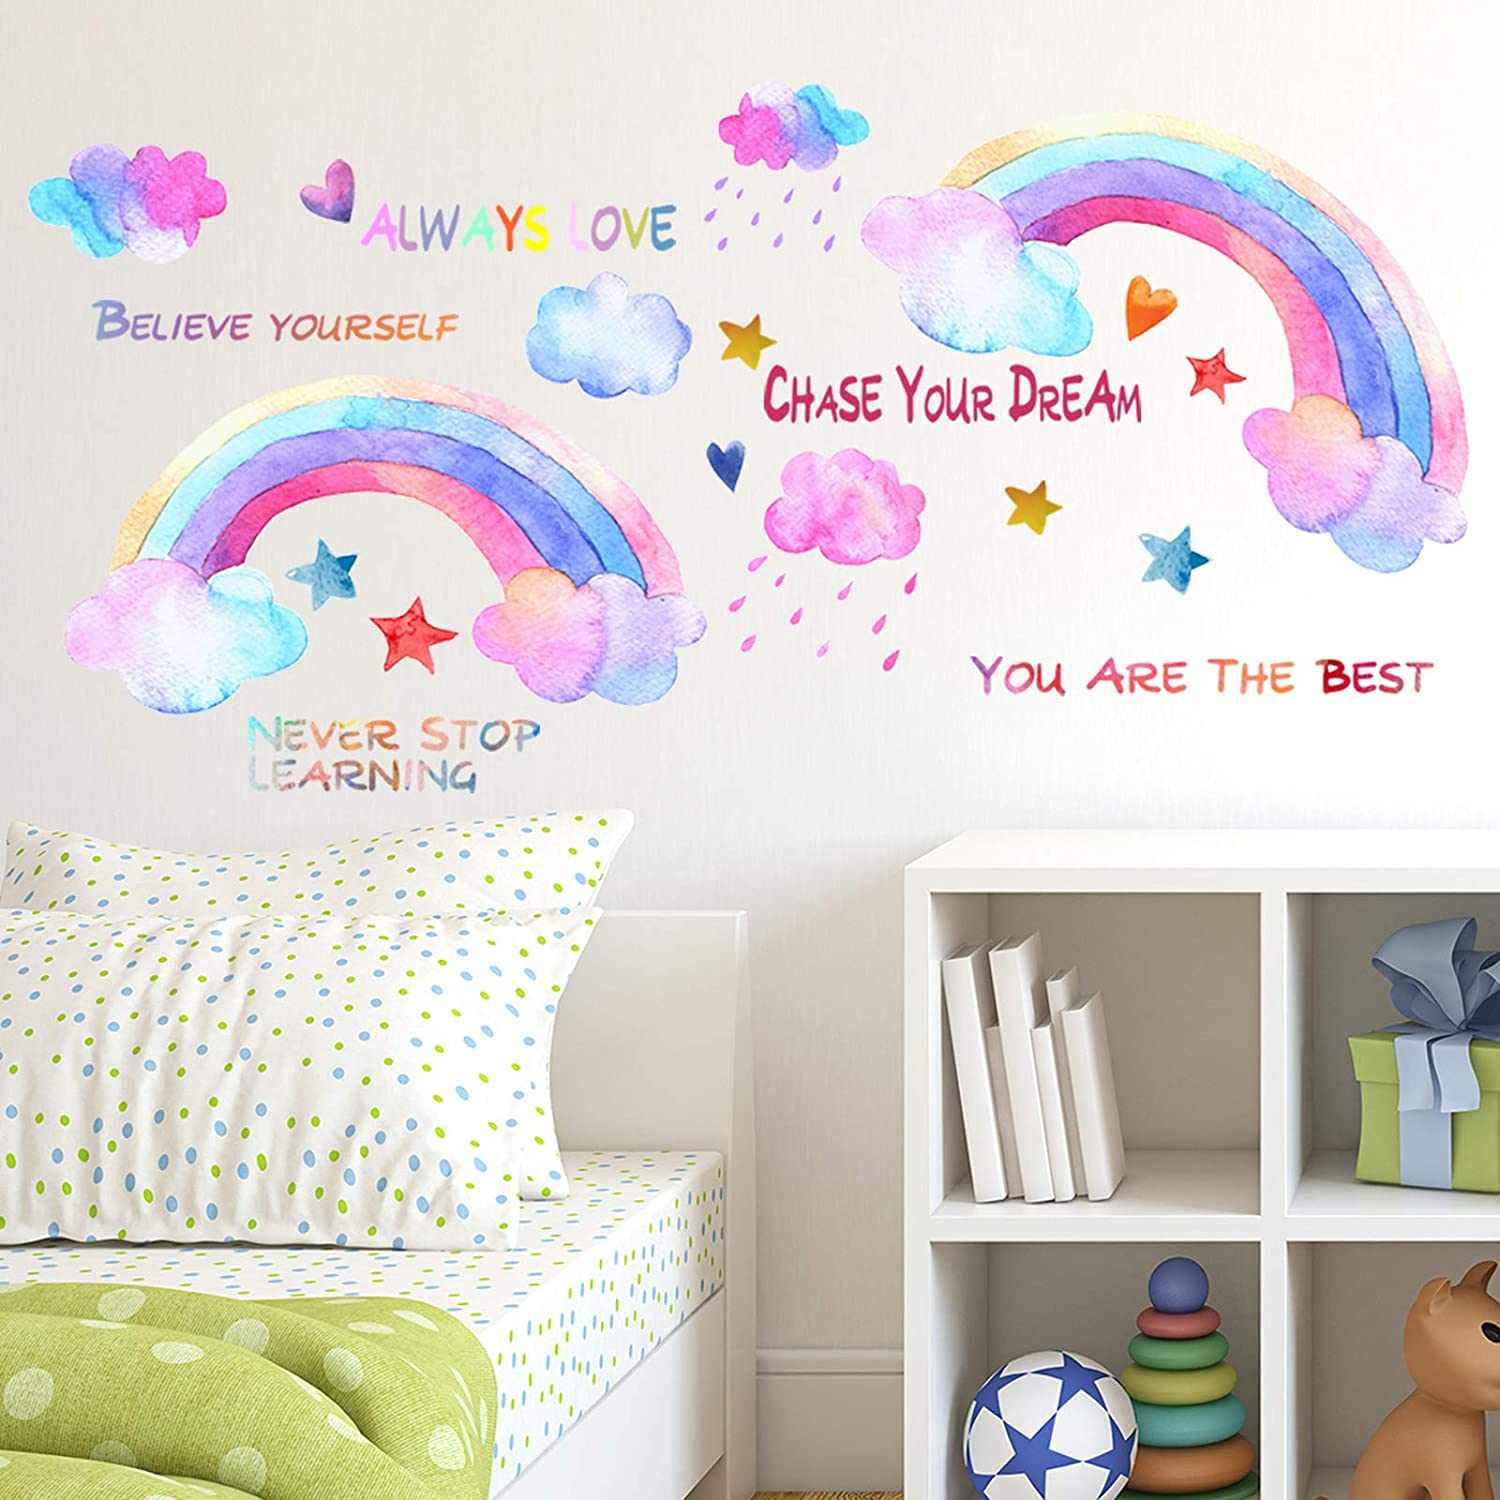 Colorful Rainbows Wall Decals,Proverbs Wall Stickers, ULENDIS Star Heart Cloud Raindrop Wall Sticker, Rainbow Wall Sticker for Kids Room Decor, DIY Mural Art Home Decoration